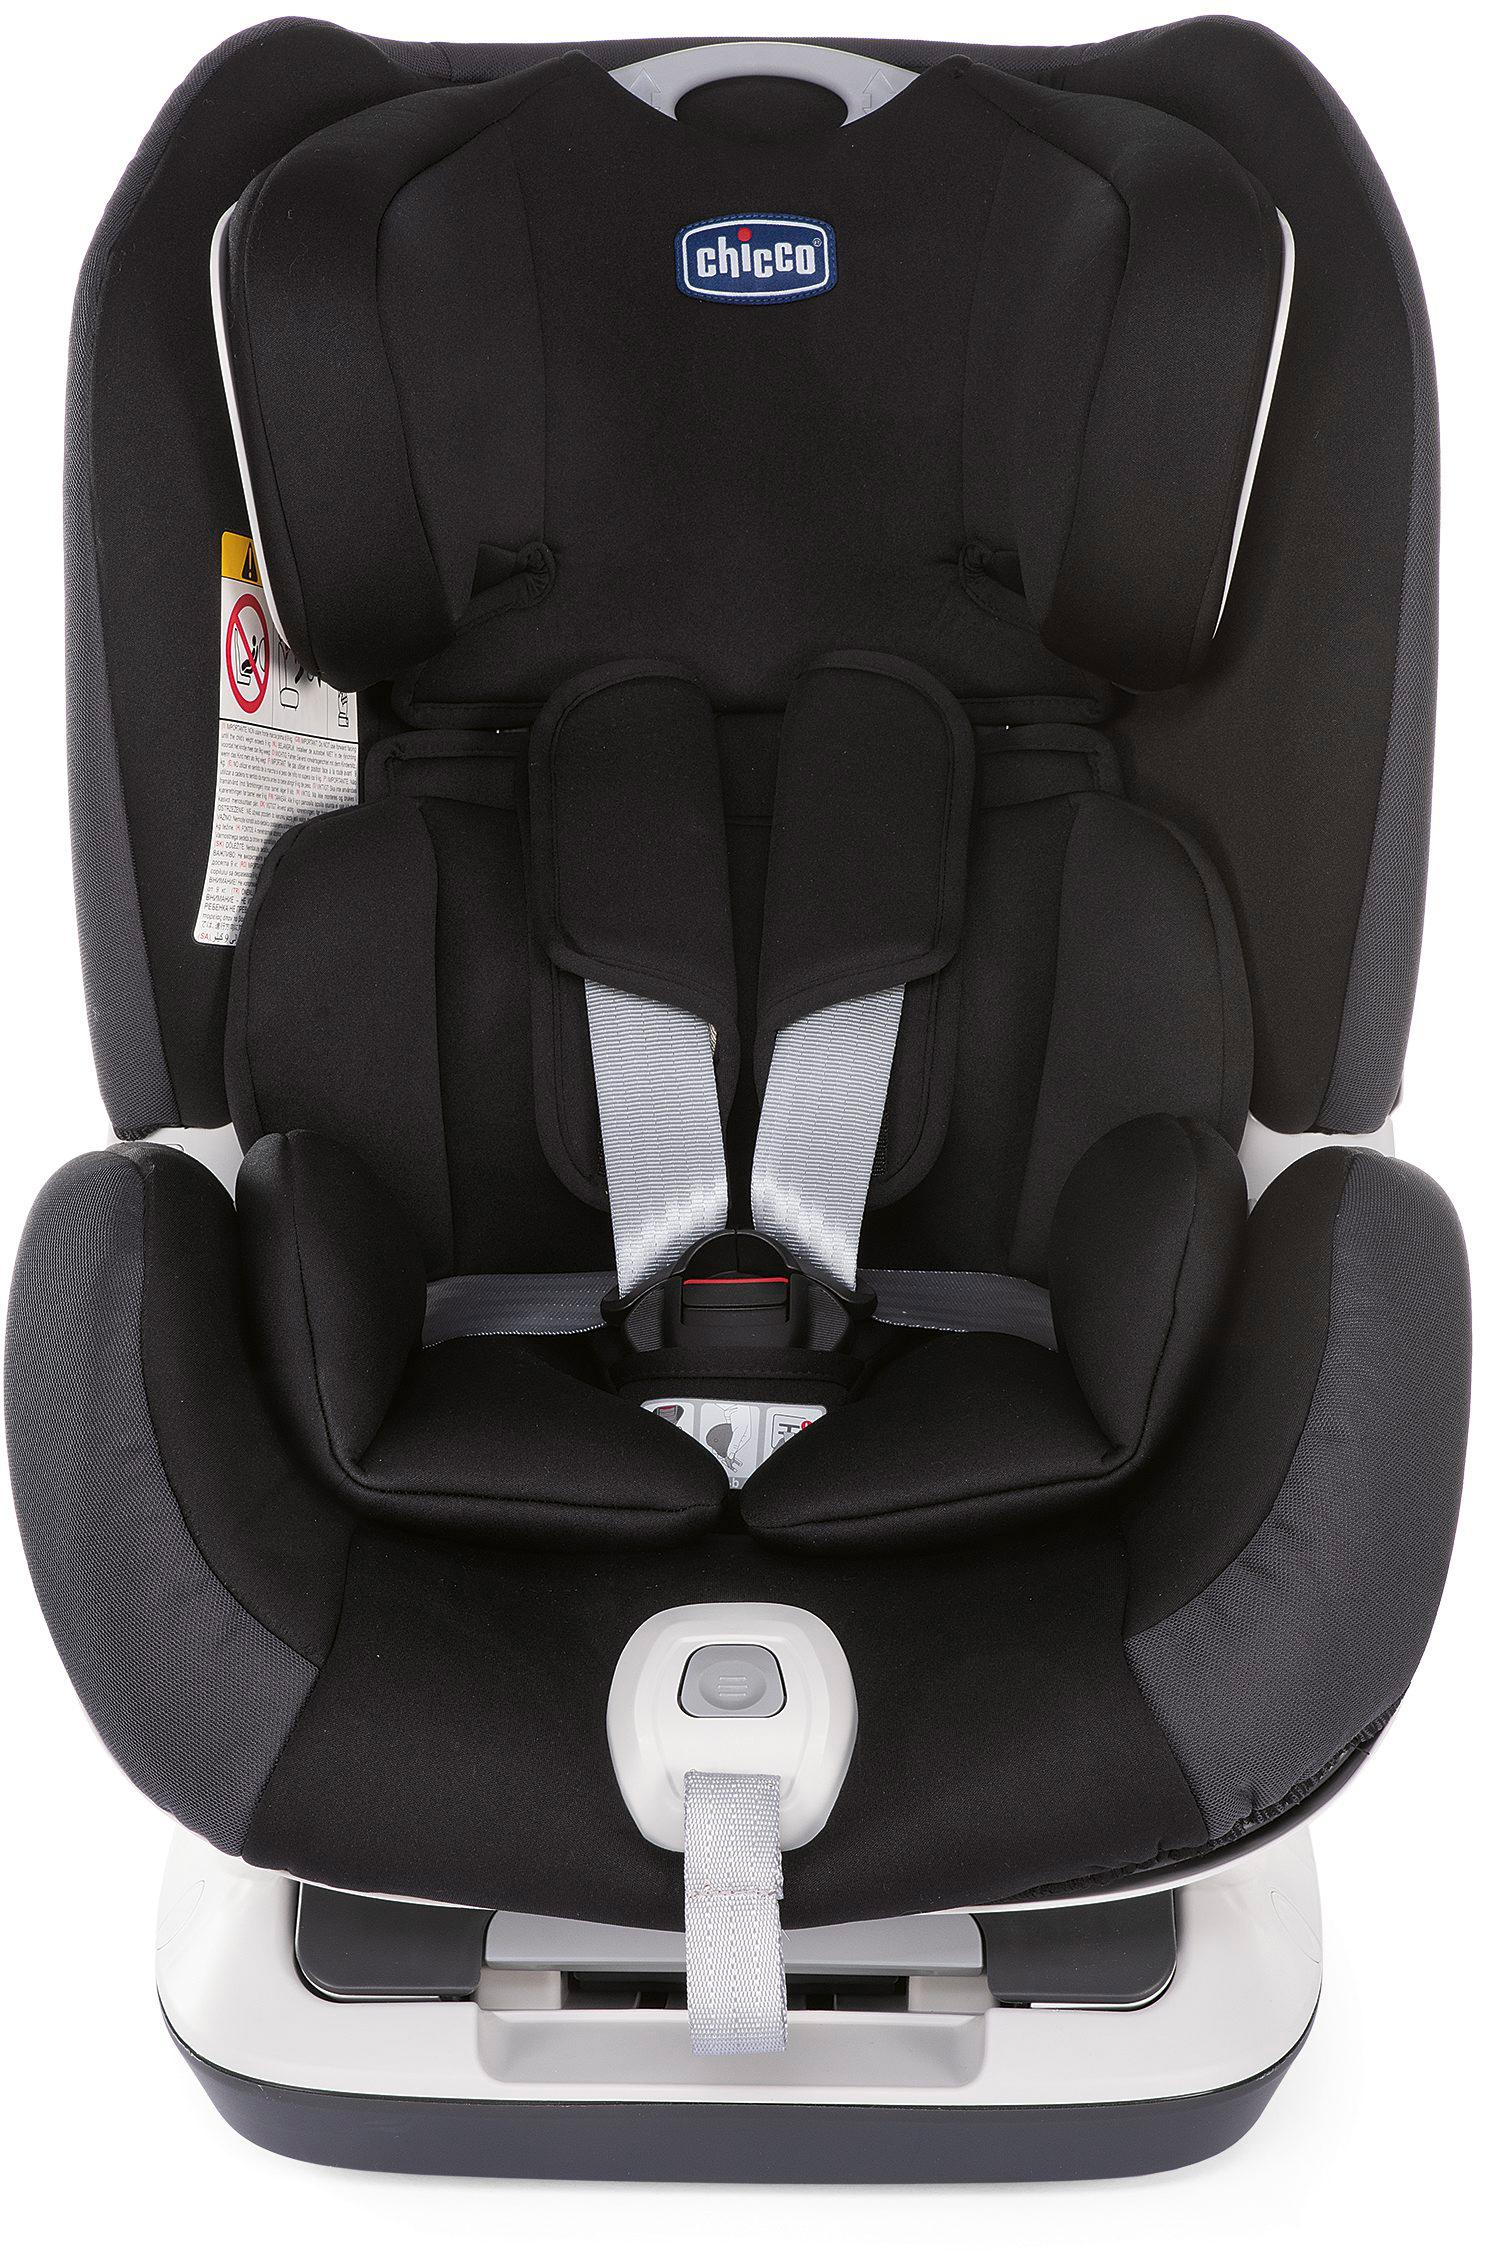 Chicco Seat Up 012 With Bebecare Technology Baby Car Seat